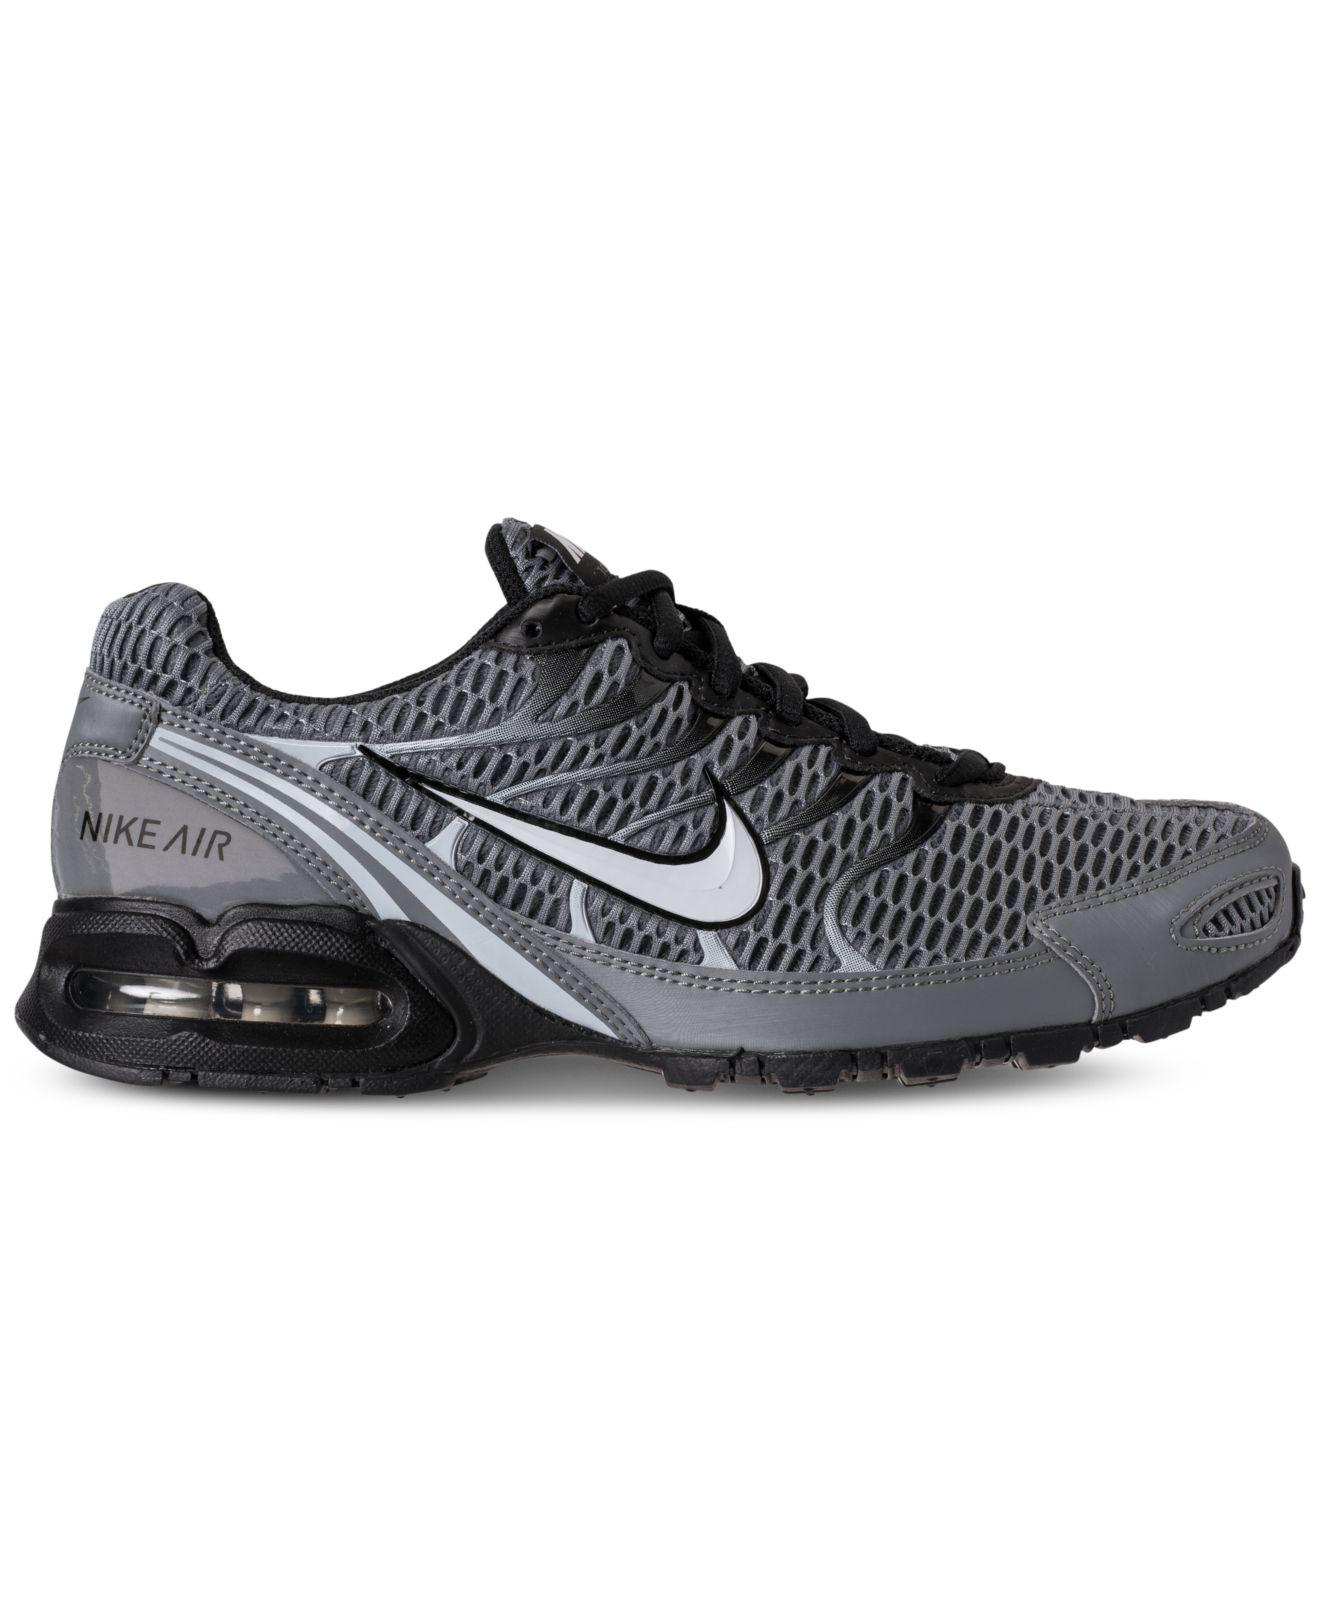 huge discount 84b65 2b5d1 Nike Air Max Torch 4 Running Sneakers From Finish Line in Black for Men -  Save 11% - Lyst